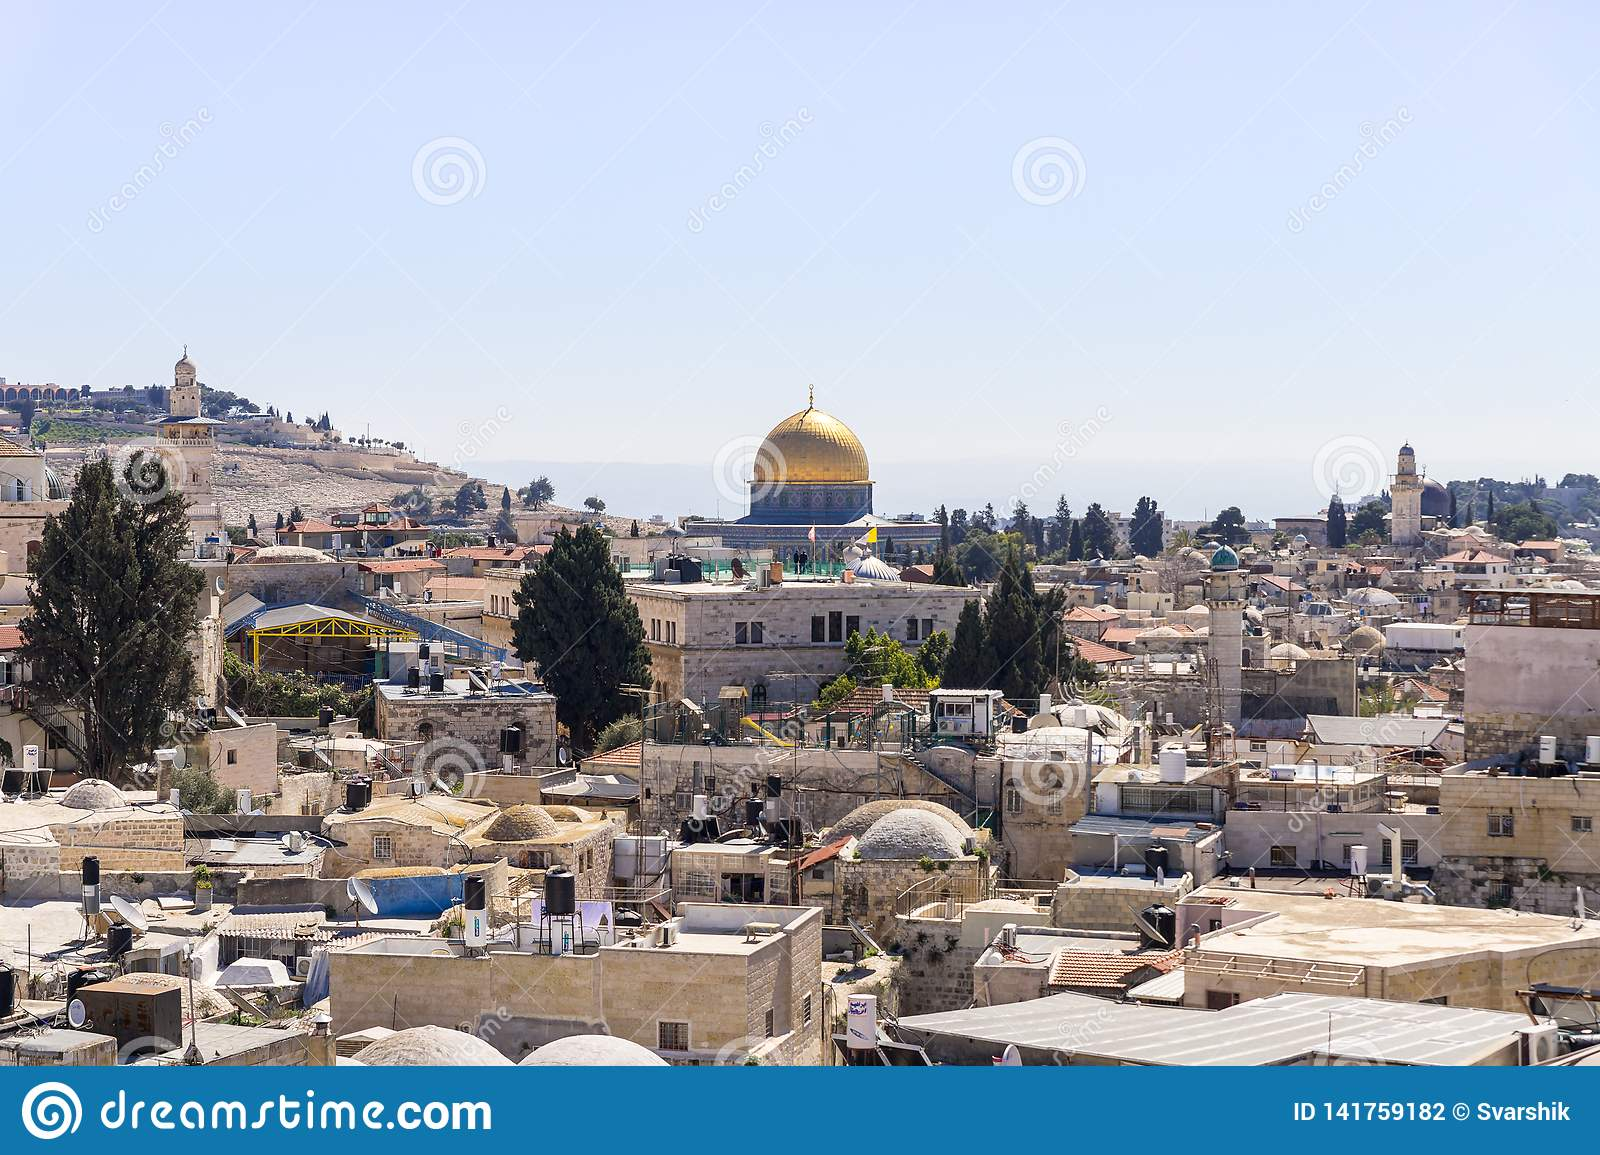 Israel Map / Geography of Israel / Map of Israel ...   Cities Surrounding Jerusalem